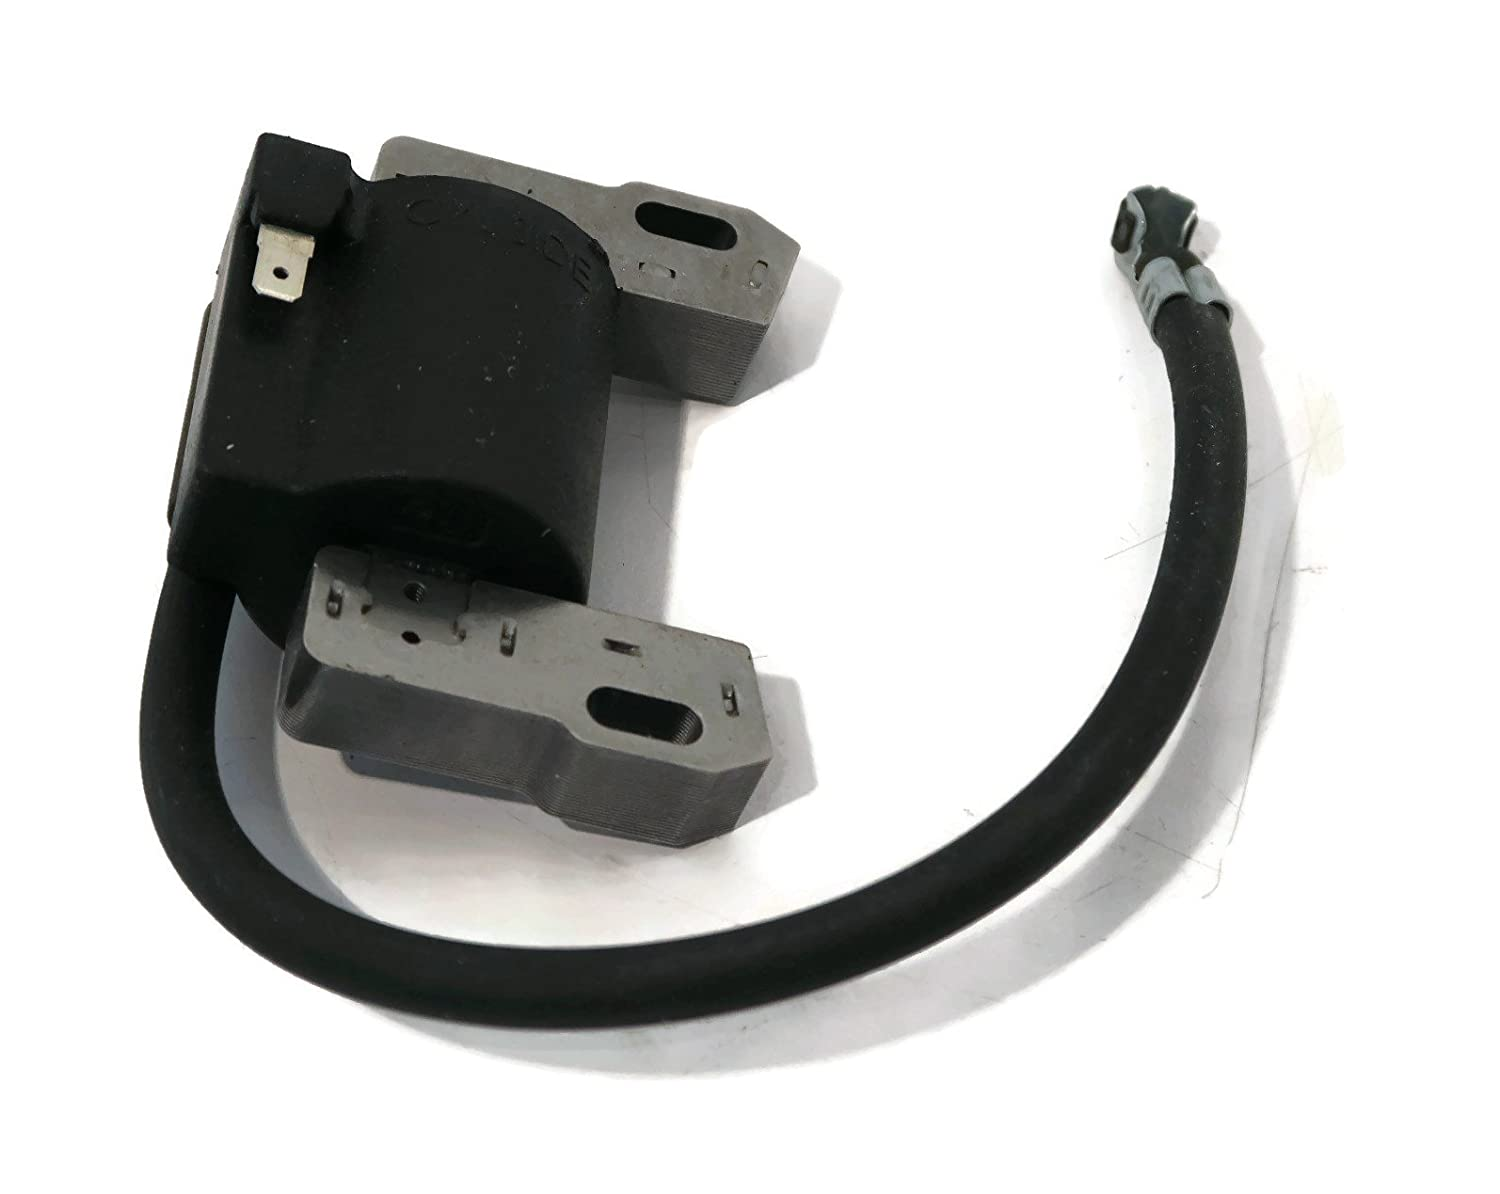 Replacement Electronic Ignition Coil Solid State Module 7hp Tecumseh Wiring Diagram For Briggs And Stratton 492341 Garden Outdoor